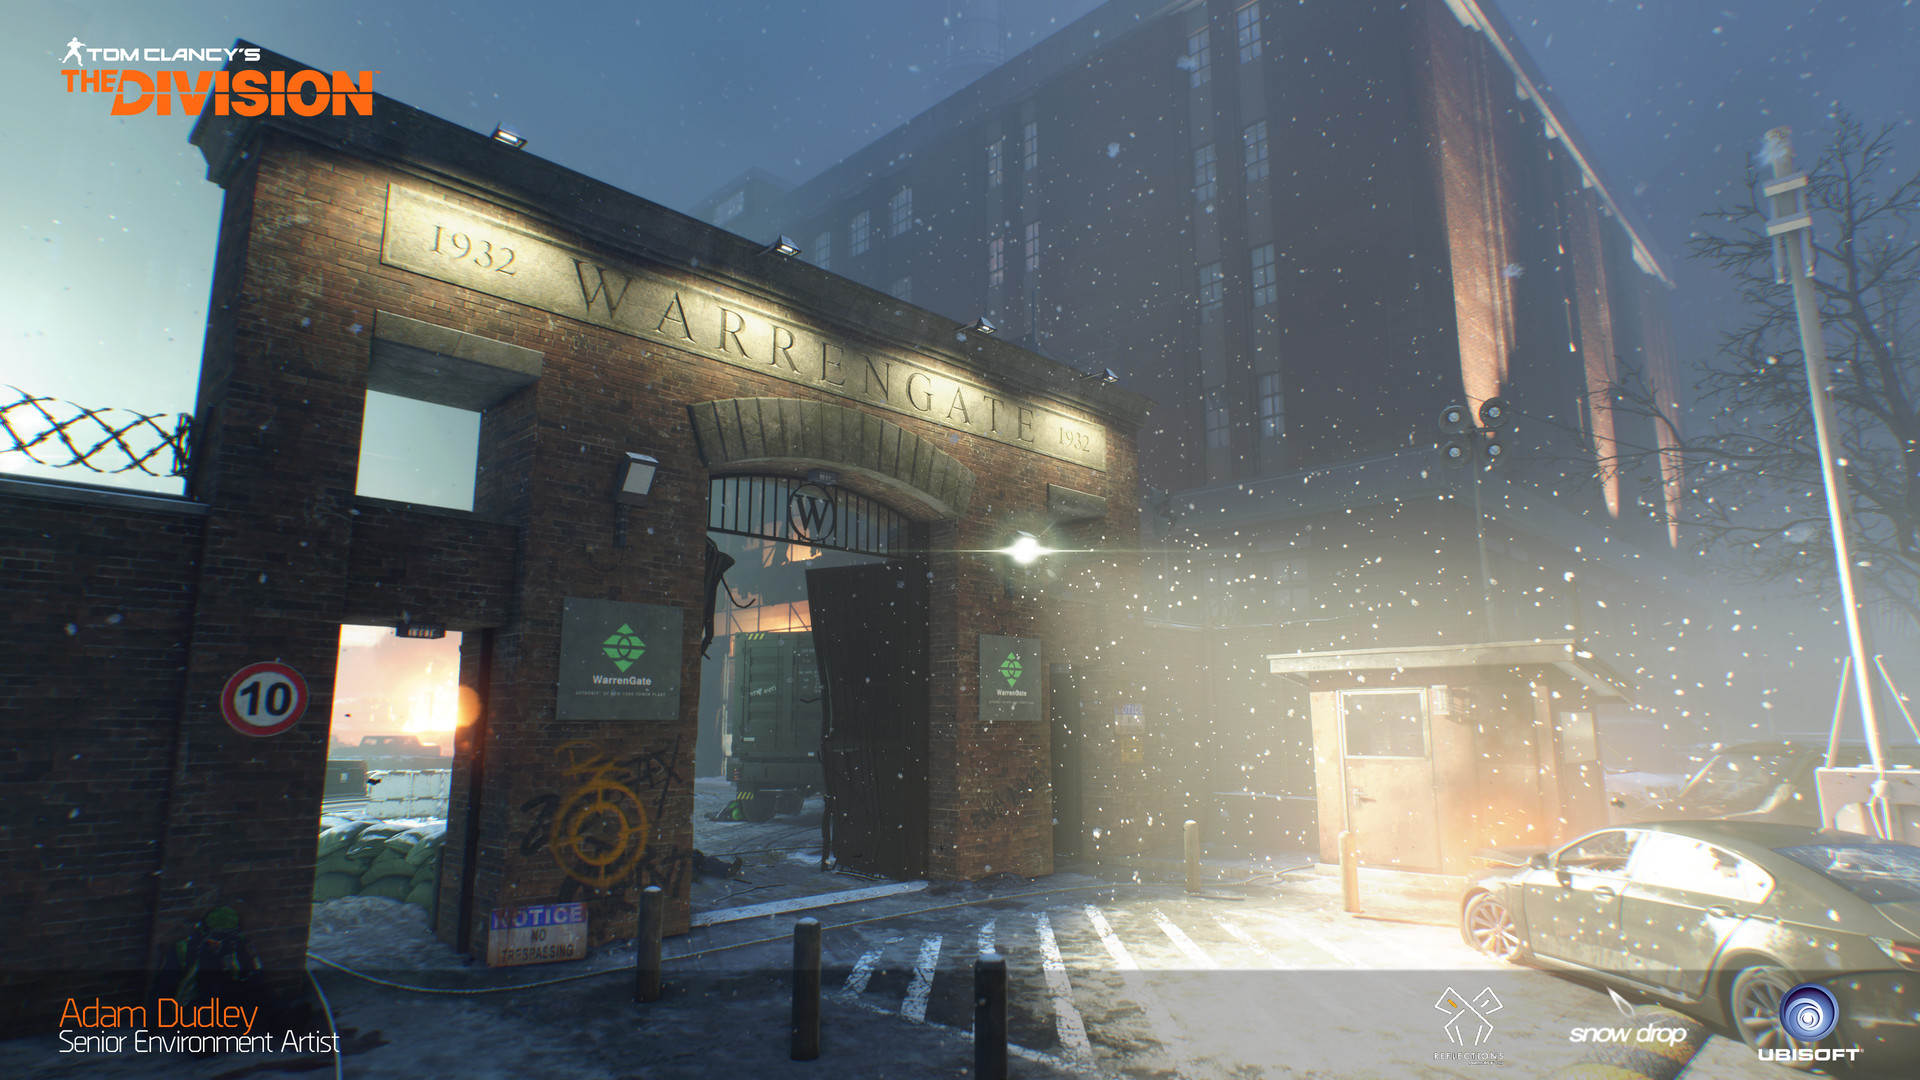 The Division Warrengate Power Plant